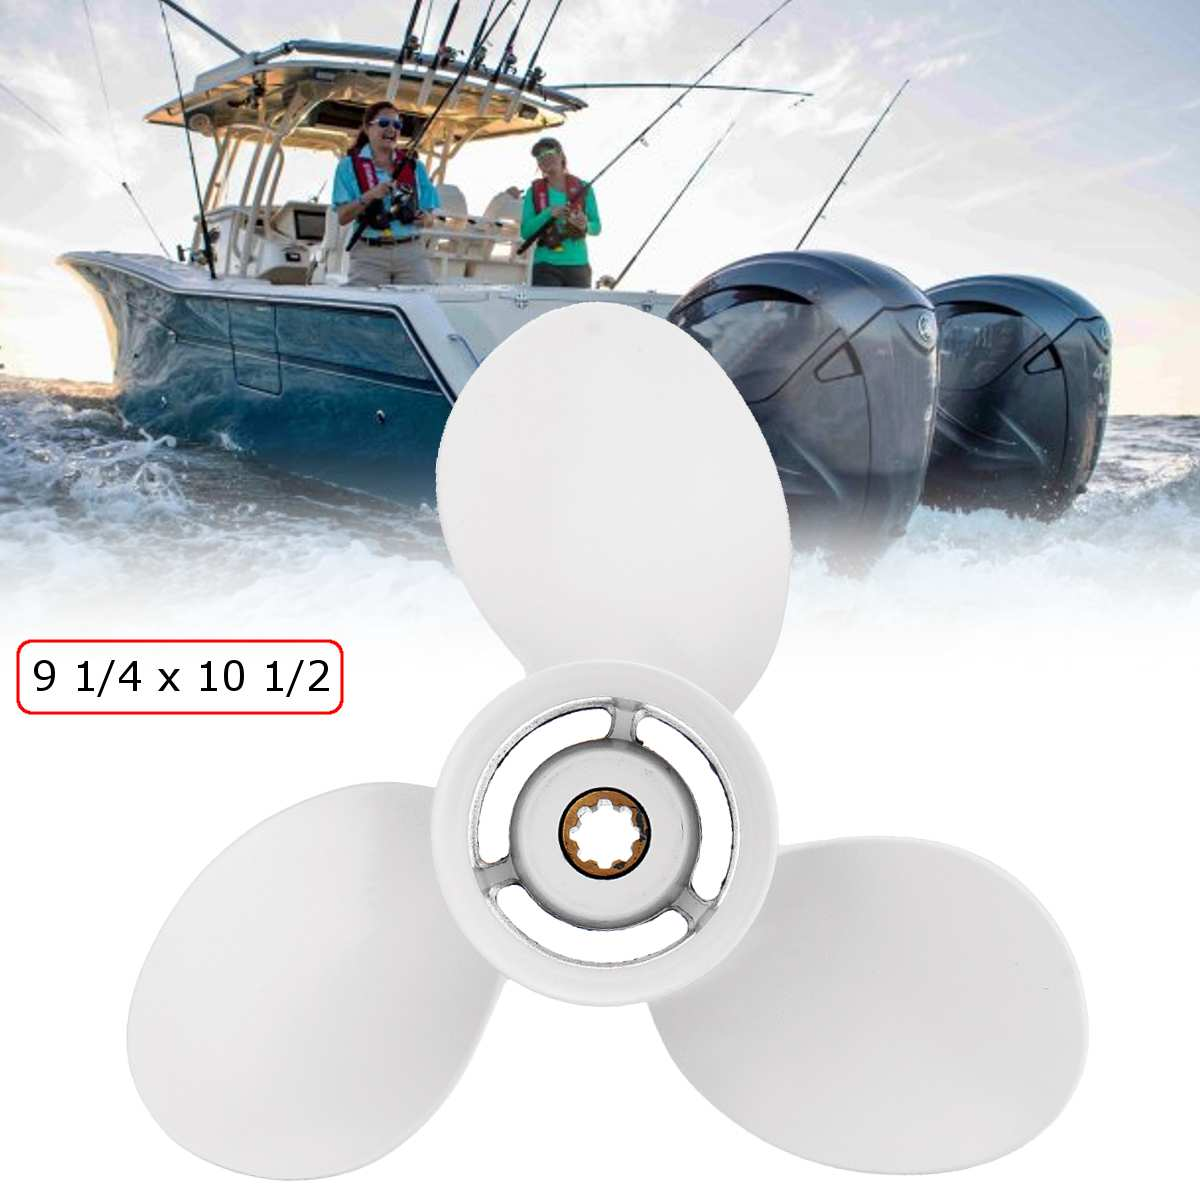 9 1/4 x 10 1/2 Outboard Propeller For Yamaha 9.9-20HP 683-45943-00-EL Aluminum Alloy Marine Propeller 8 Spline Tooth 3 Blades